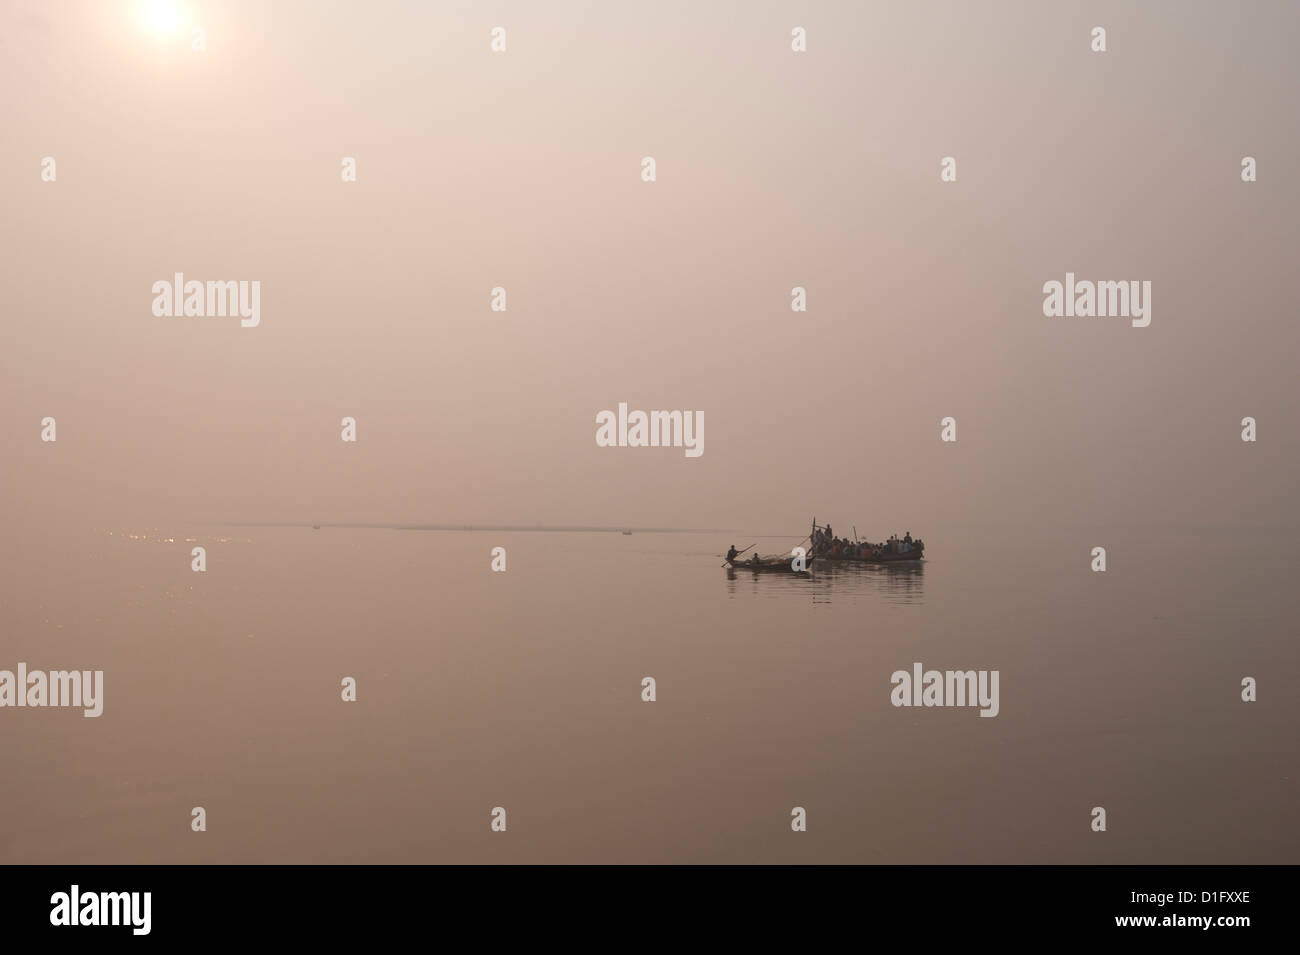 Fishing boats and ferry on the River Ganges in the early morning, Sonepur, Bihar, India, Asia - Stock Image